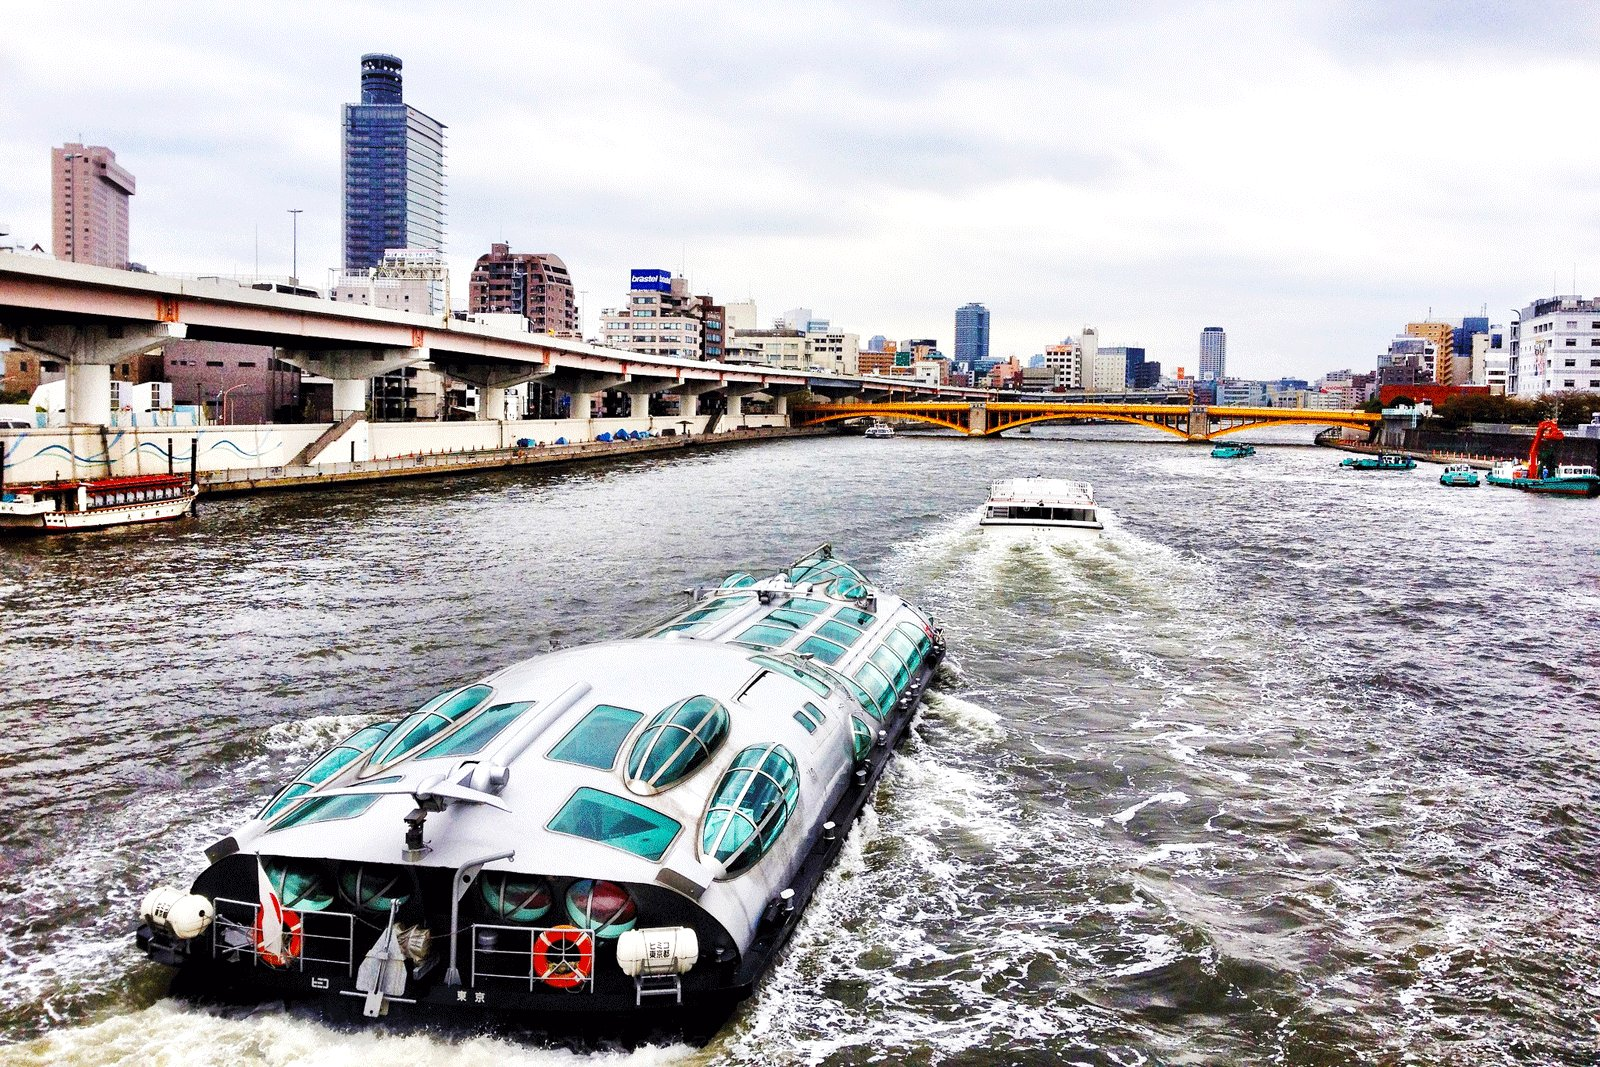 How to take a hotaluna water bus ride in Tokyo